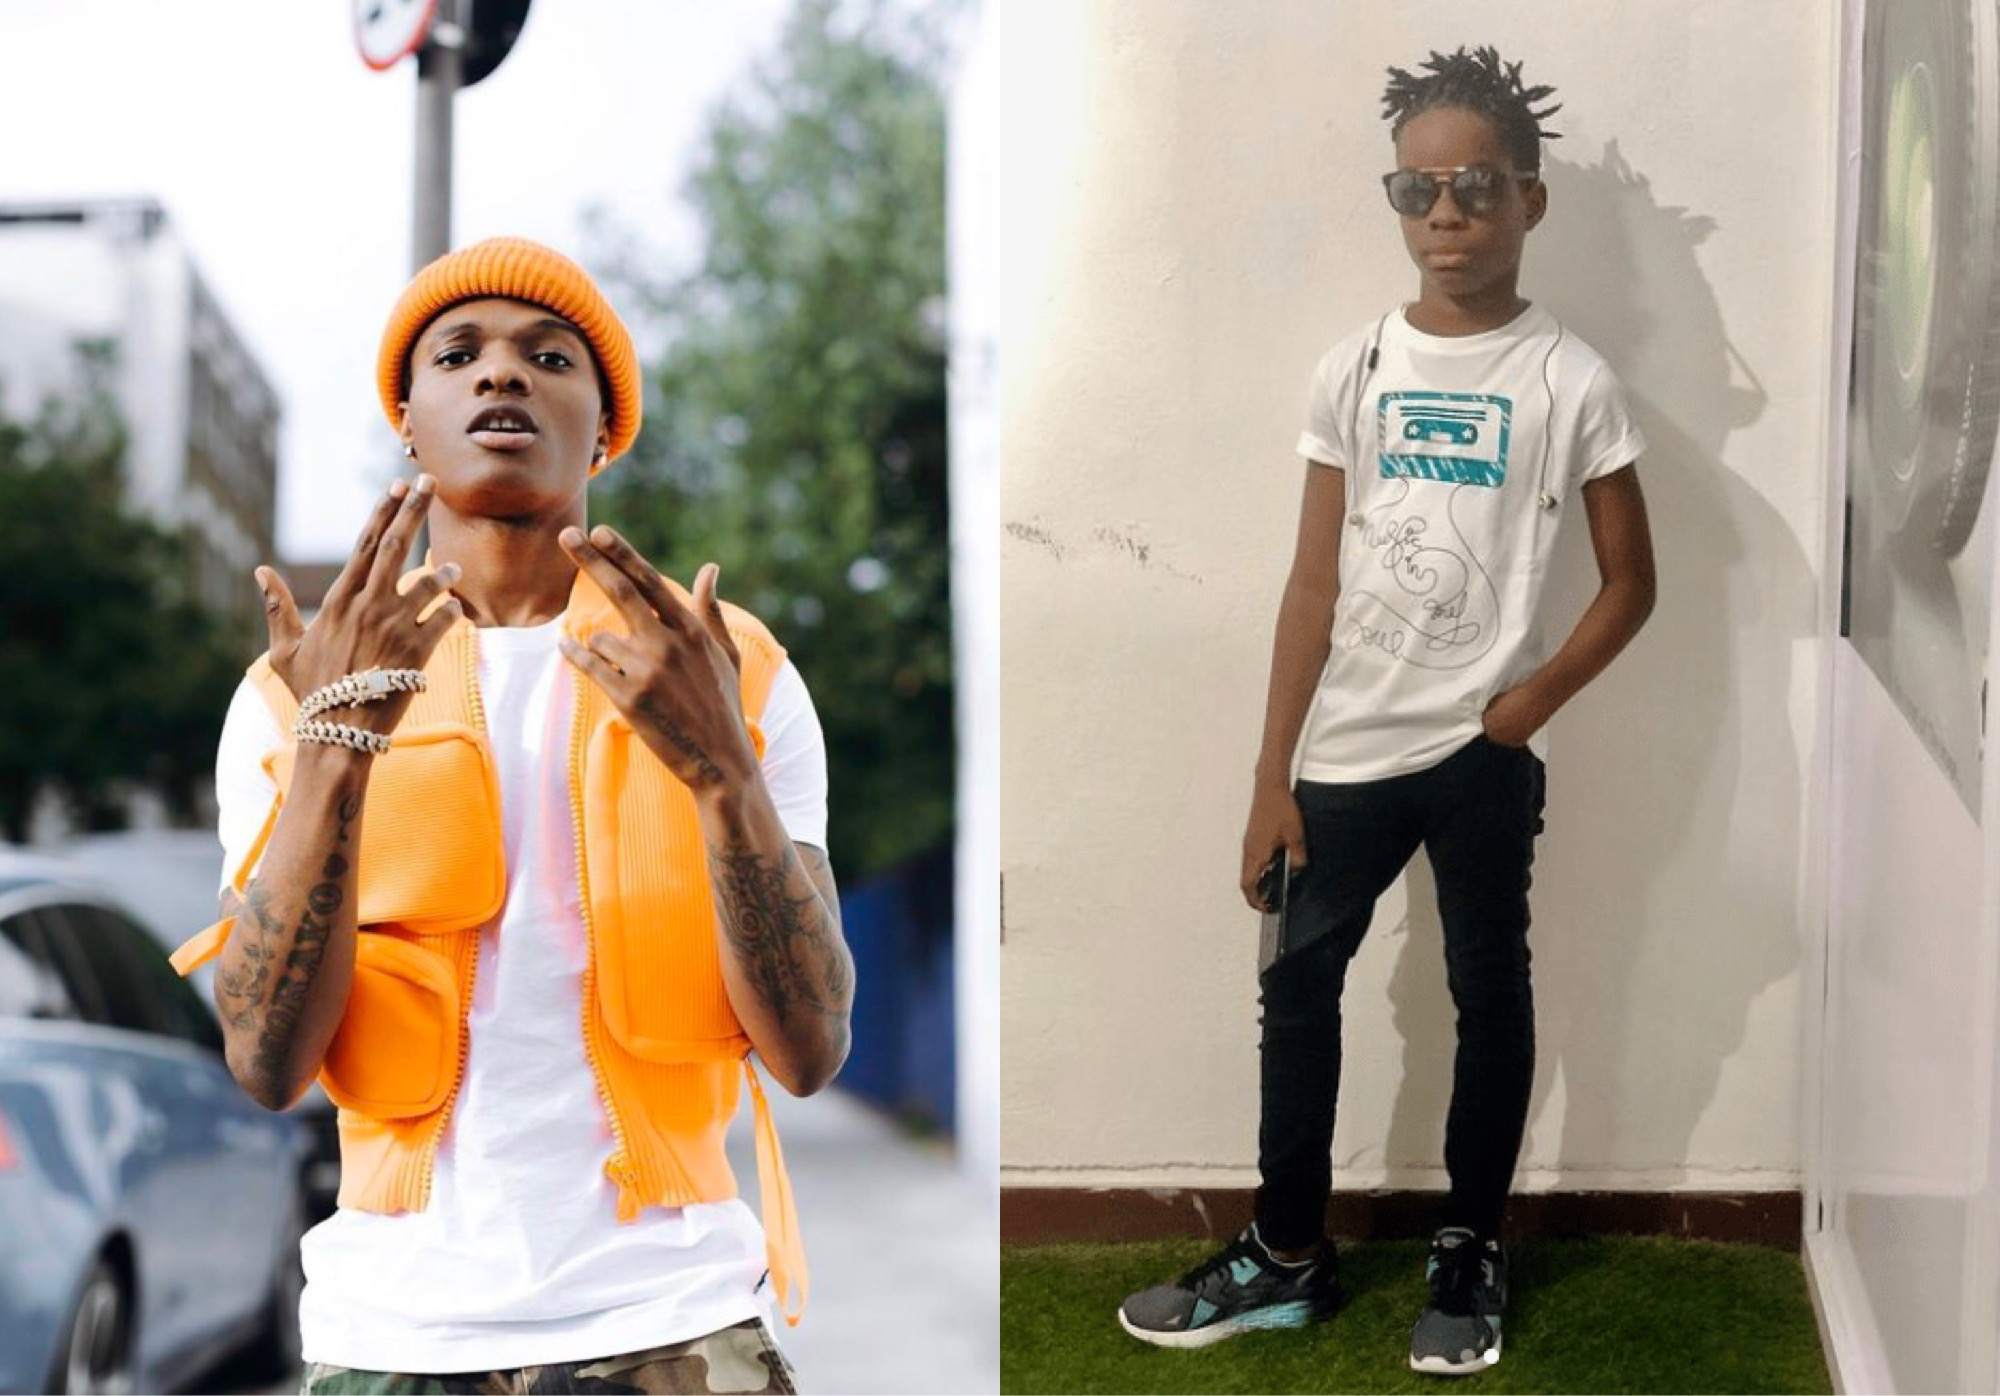 'My Dad Is The Greatest Of All Time' - Singer Wizkid's First Son, Boluwatife Says